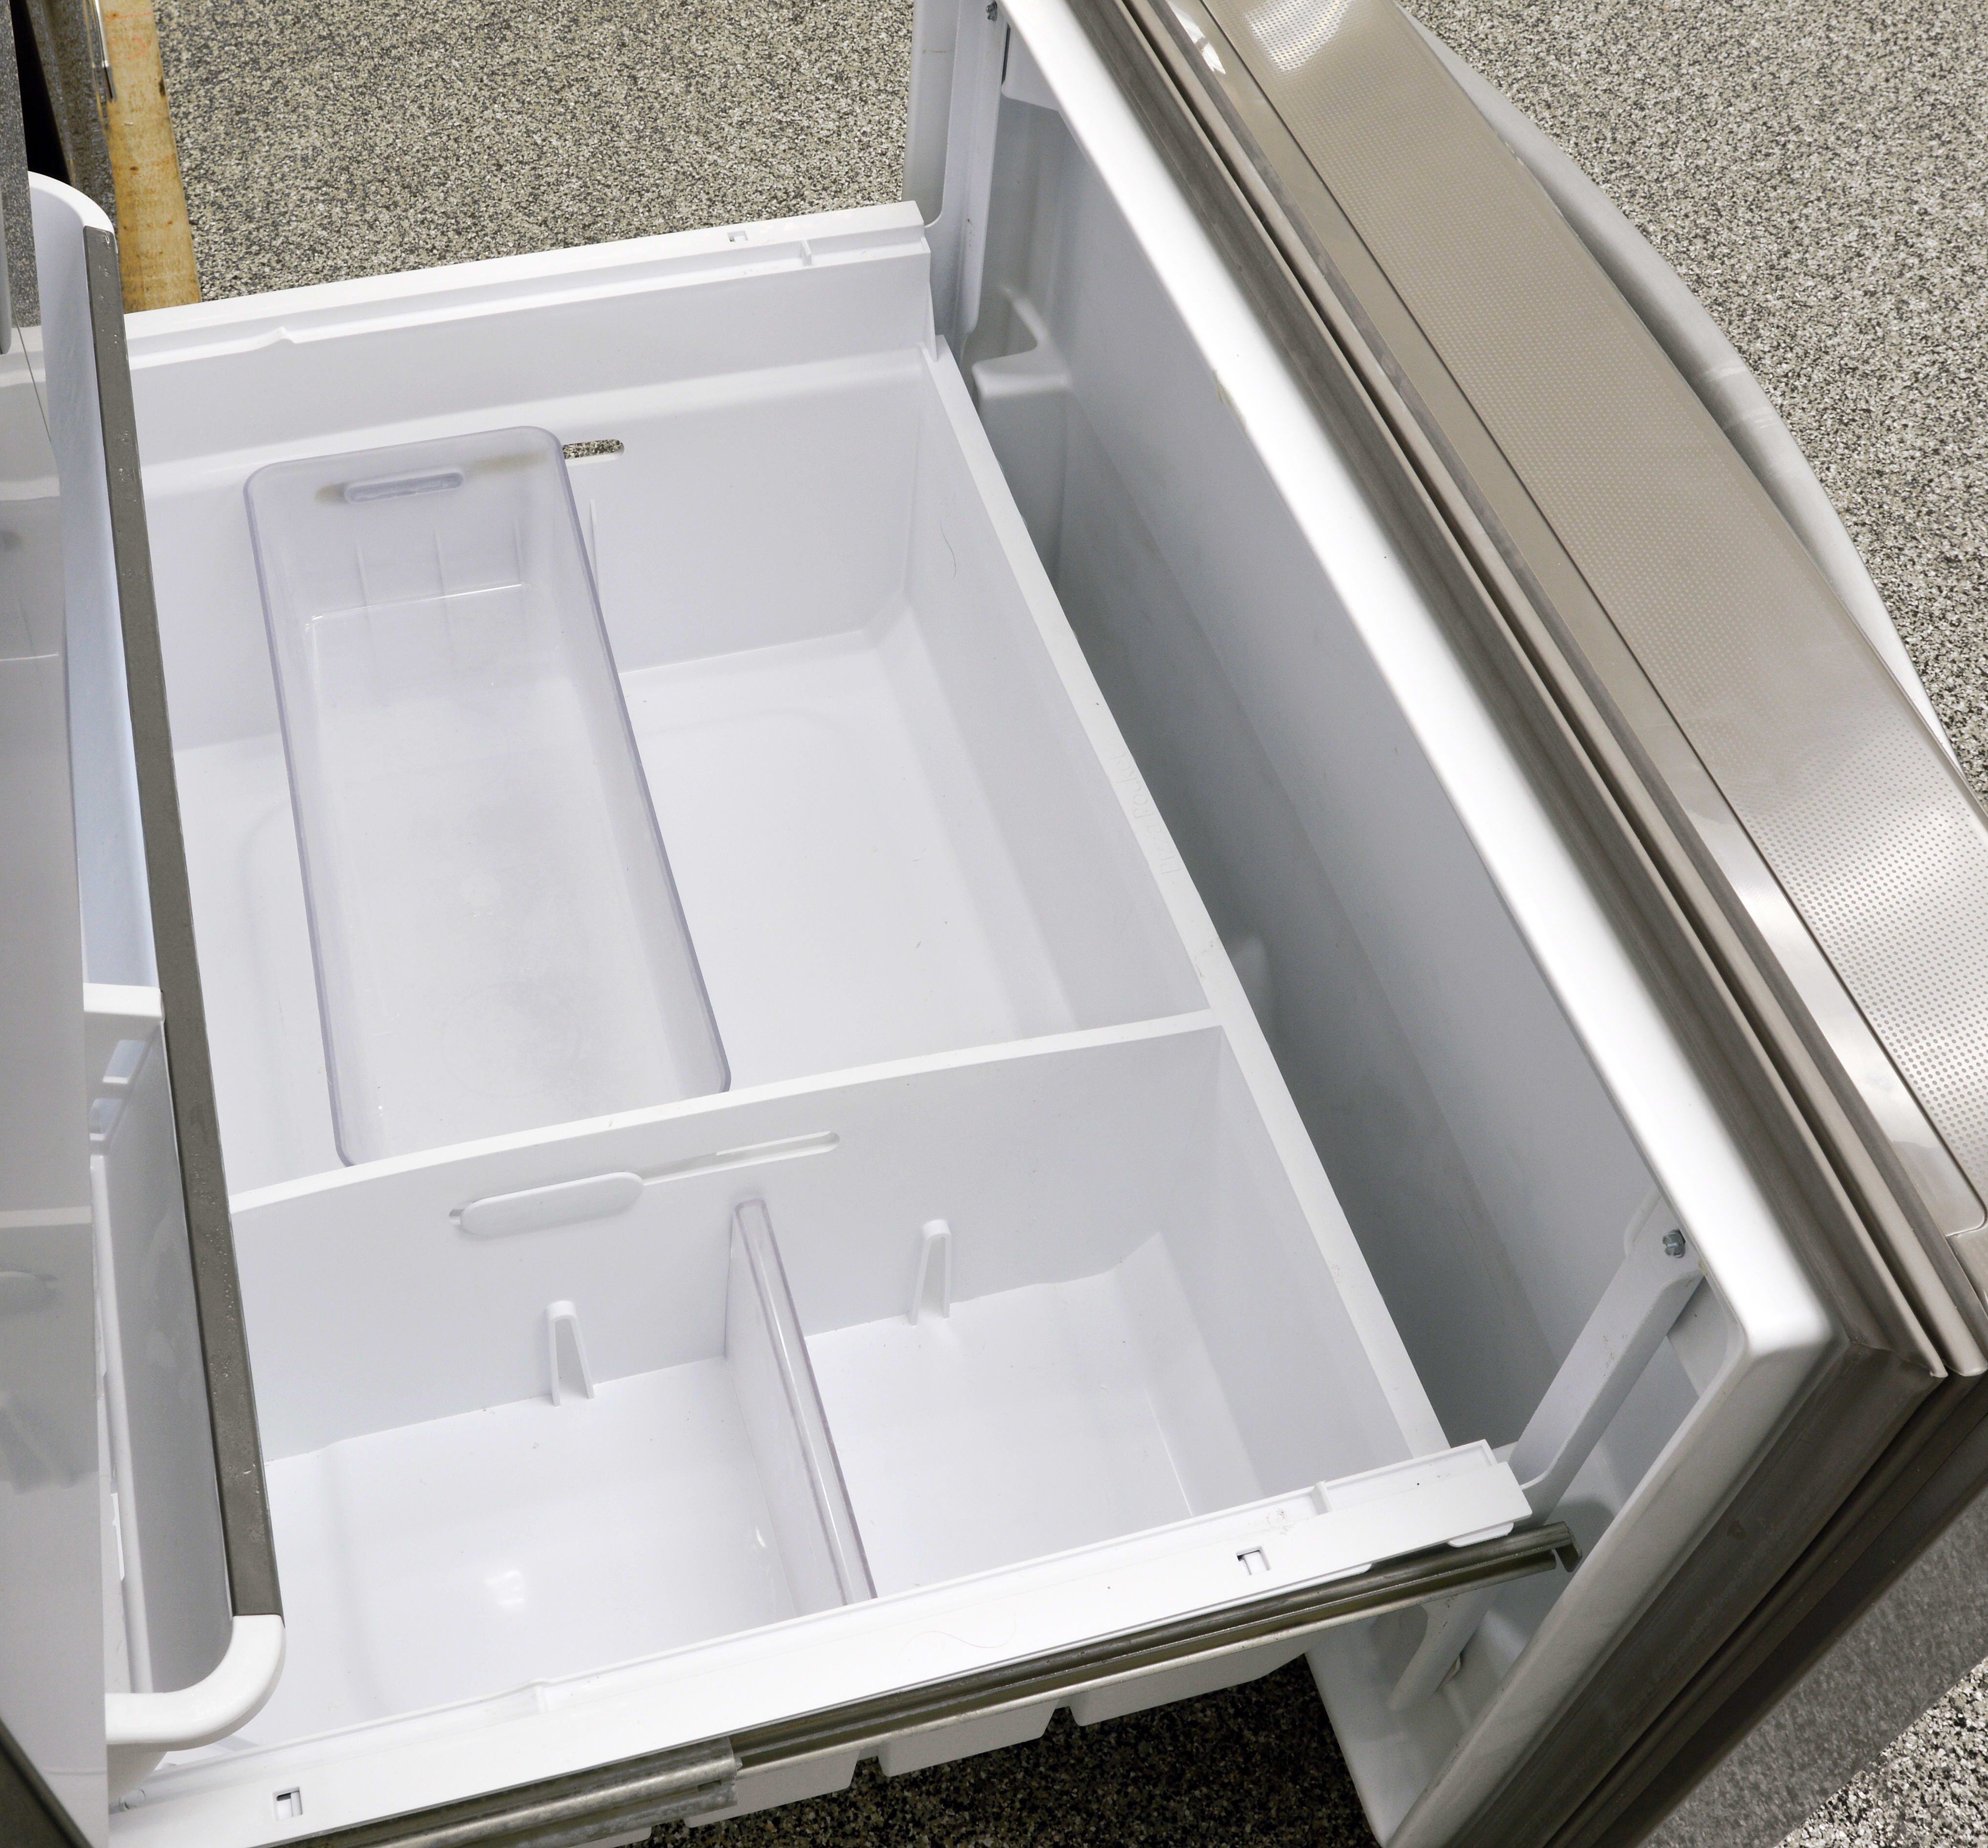 Just inside the freezer door is a Pizza Pocket, ideal for storing thin items that are tall or wide and might not fit well in the drawers.